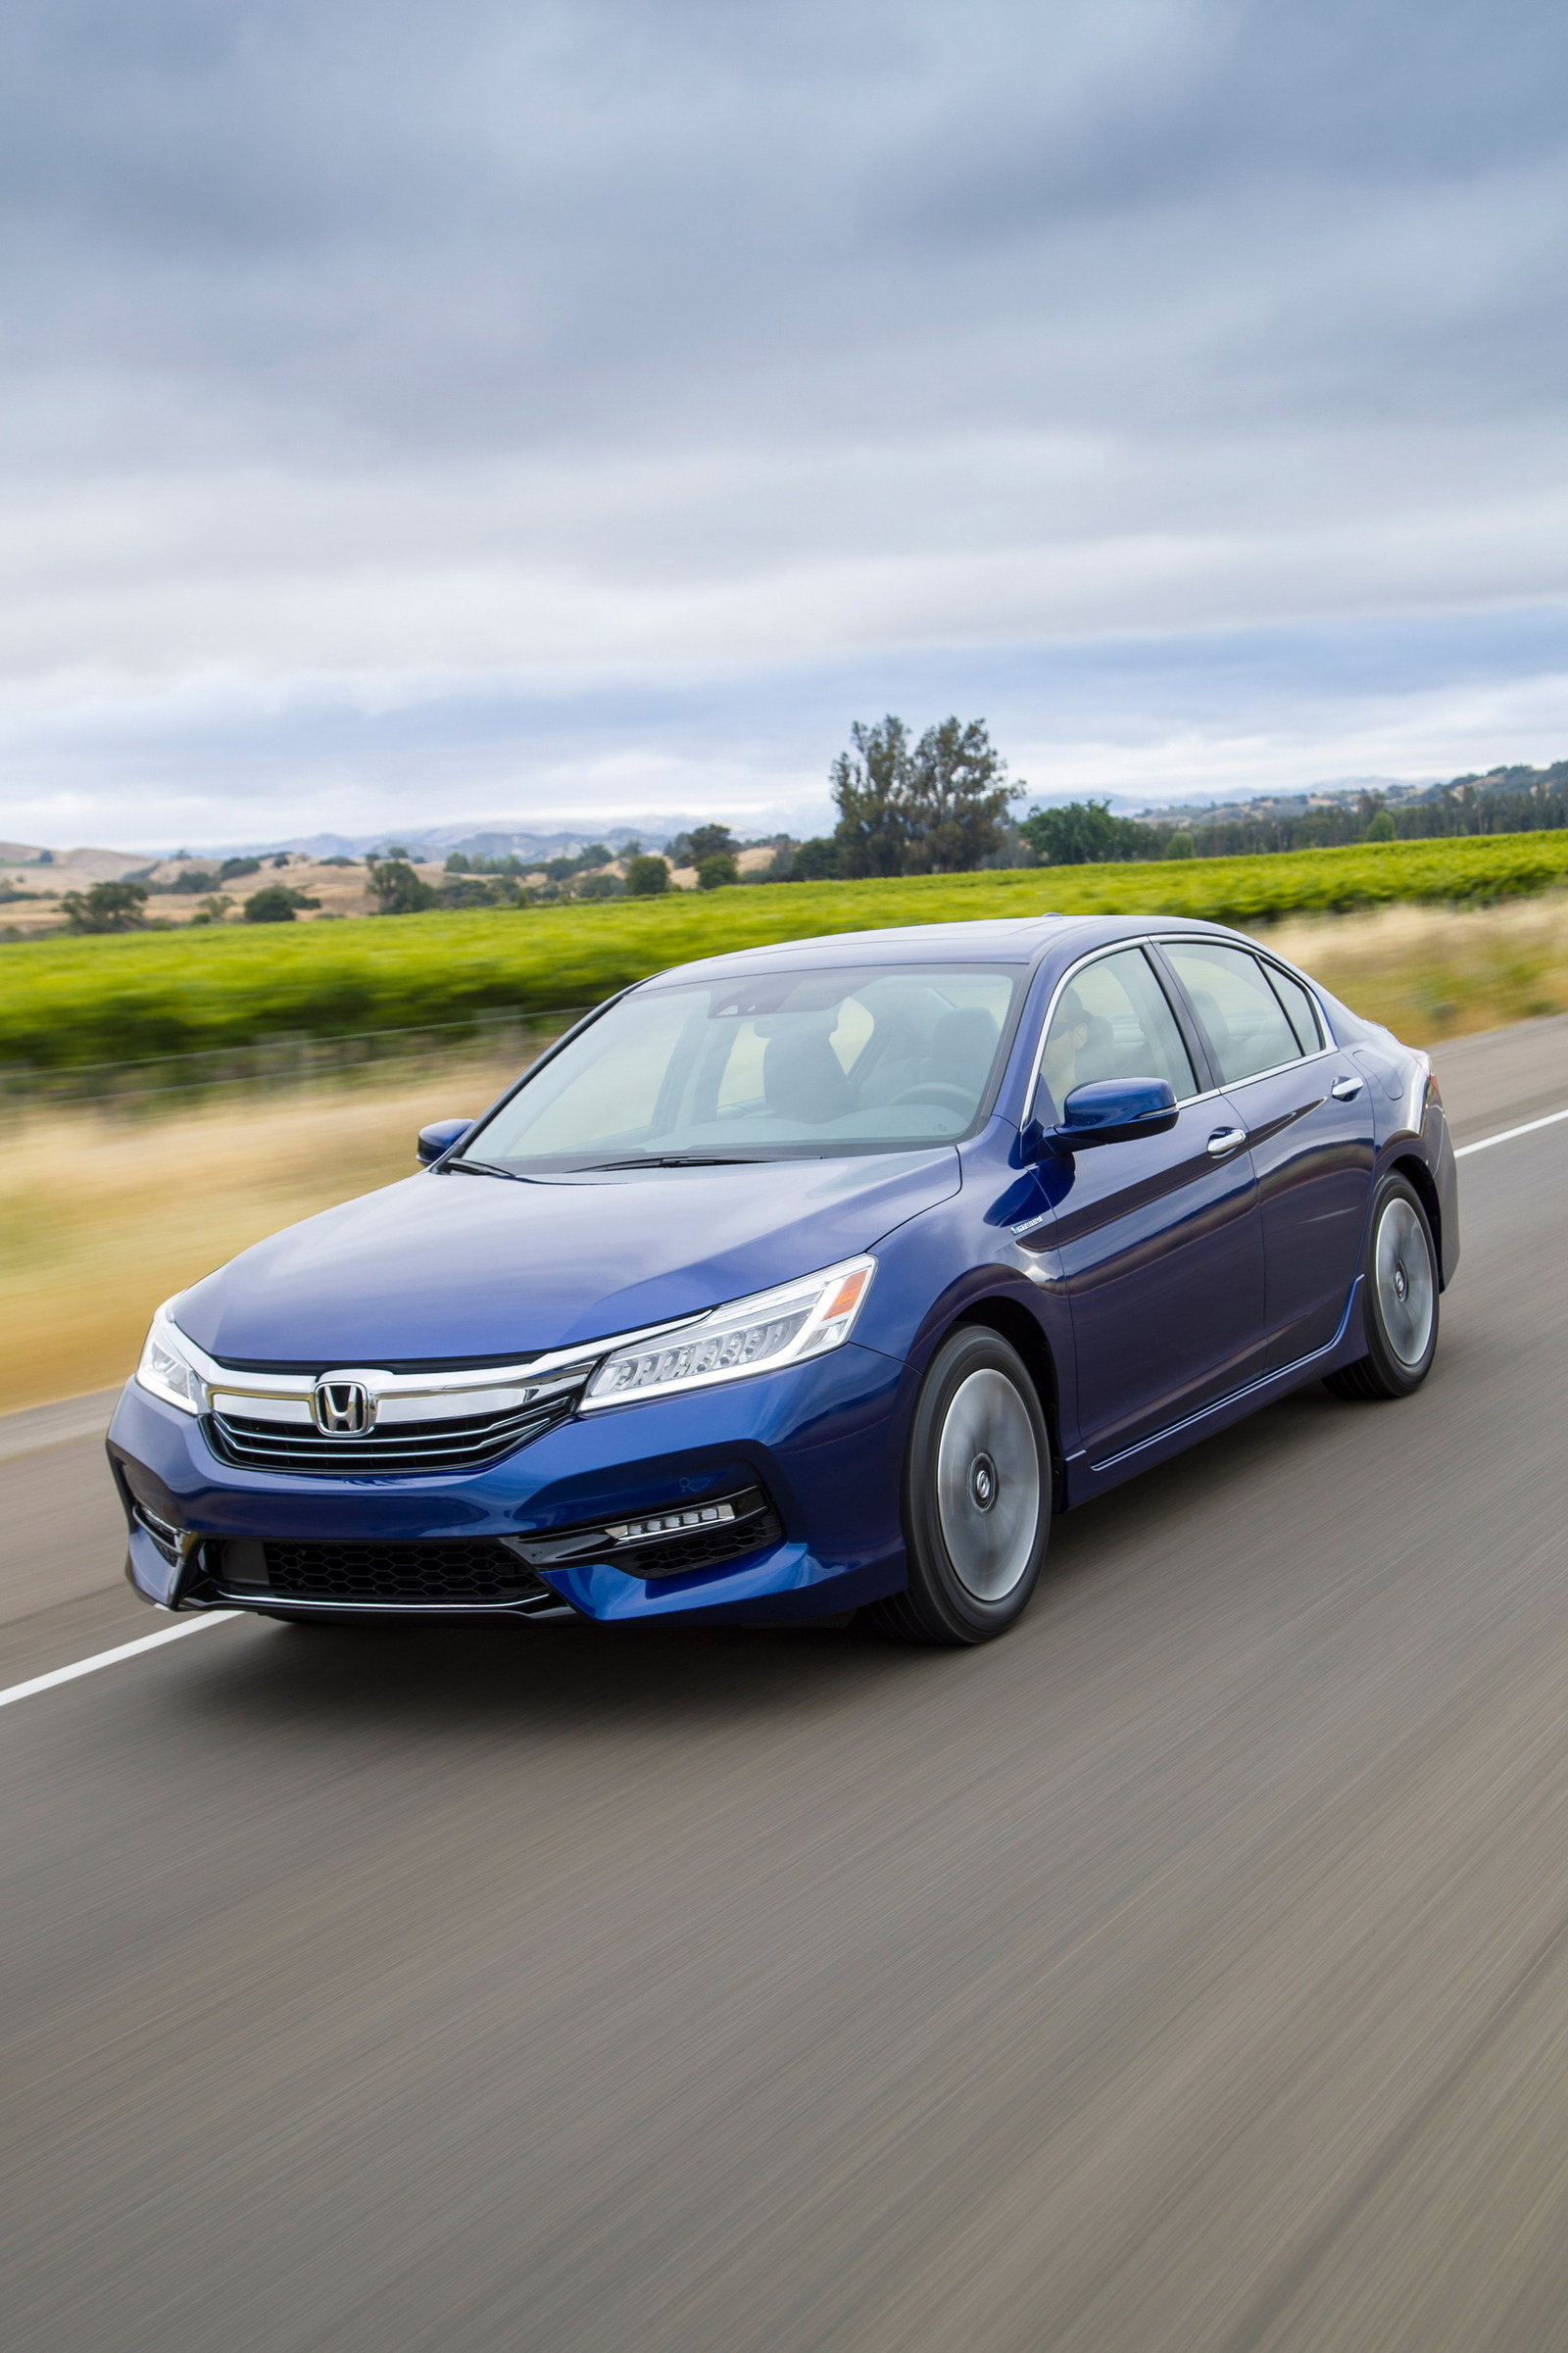 2017 honda accord hybrid picture 679662 car review top speed. Black Bedroom Furniture Sets. Home Design Ideas